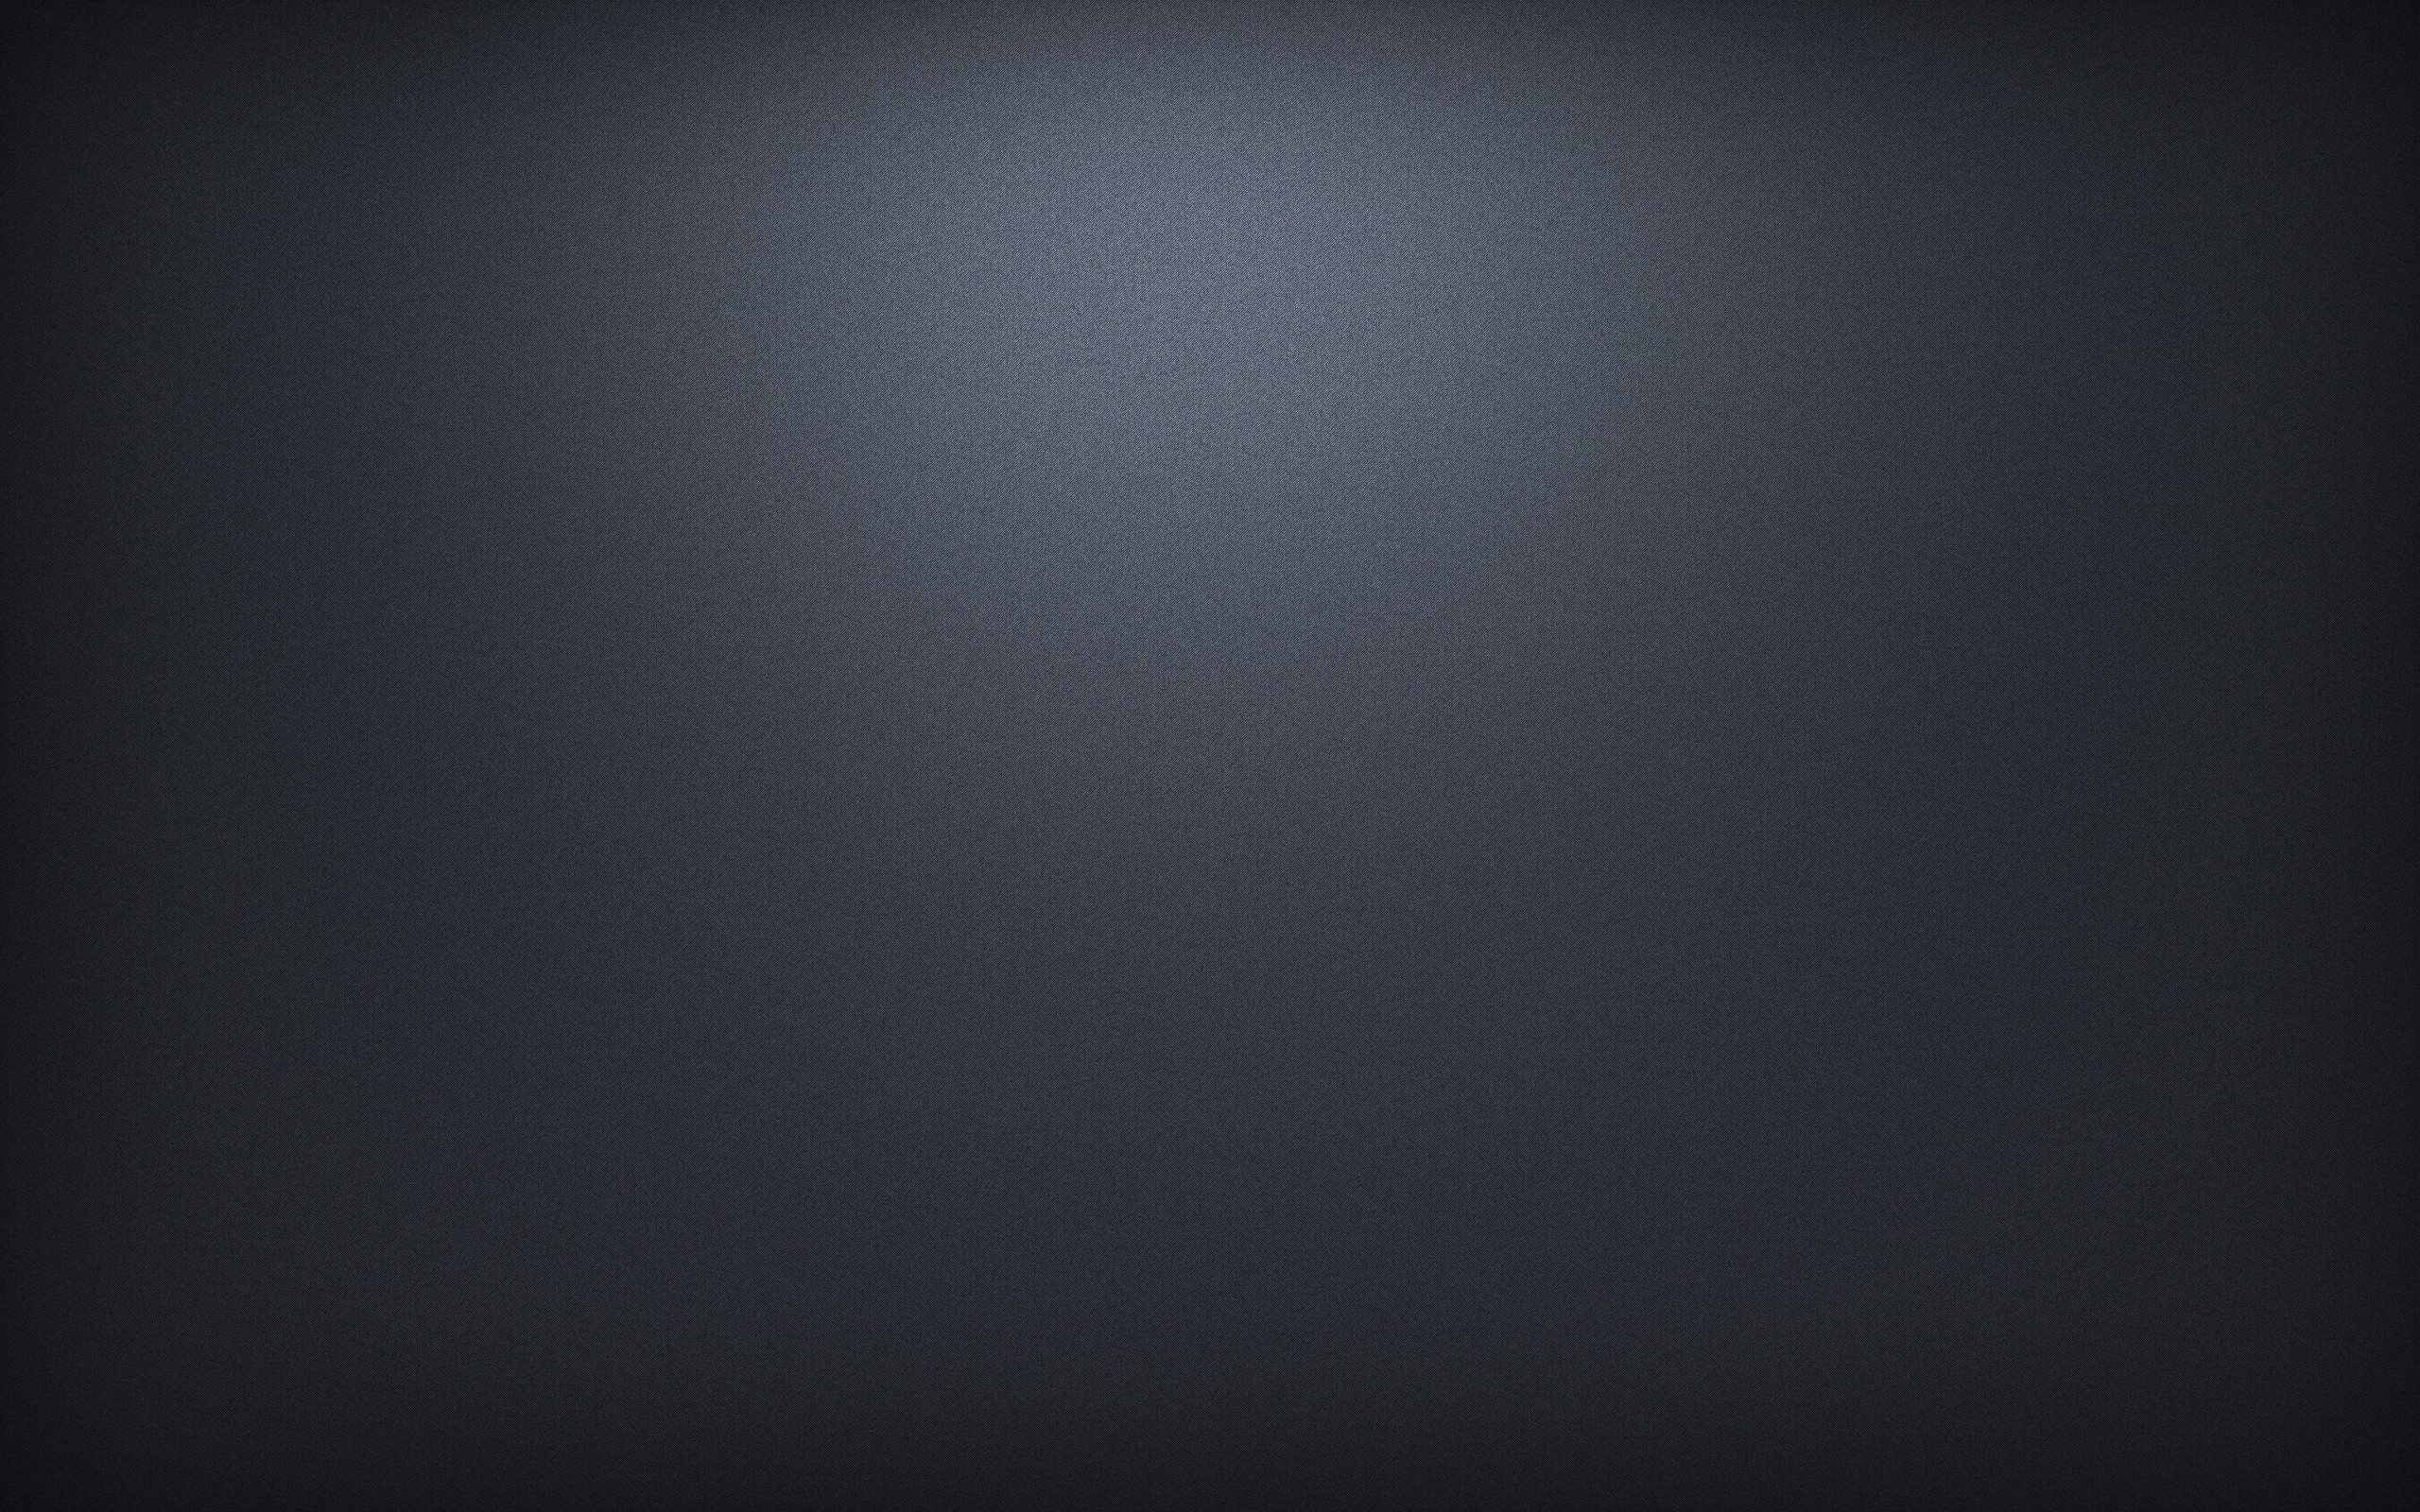 Dark background ·① Download free stunning HD wallpapers for desktop and mobile devices in any ...